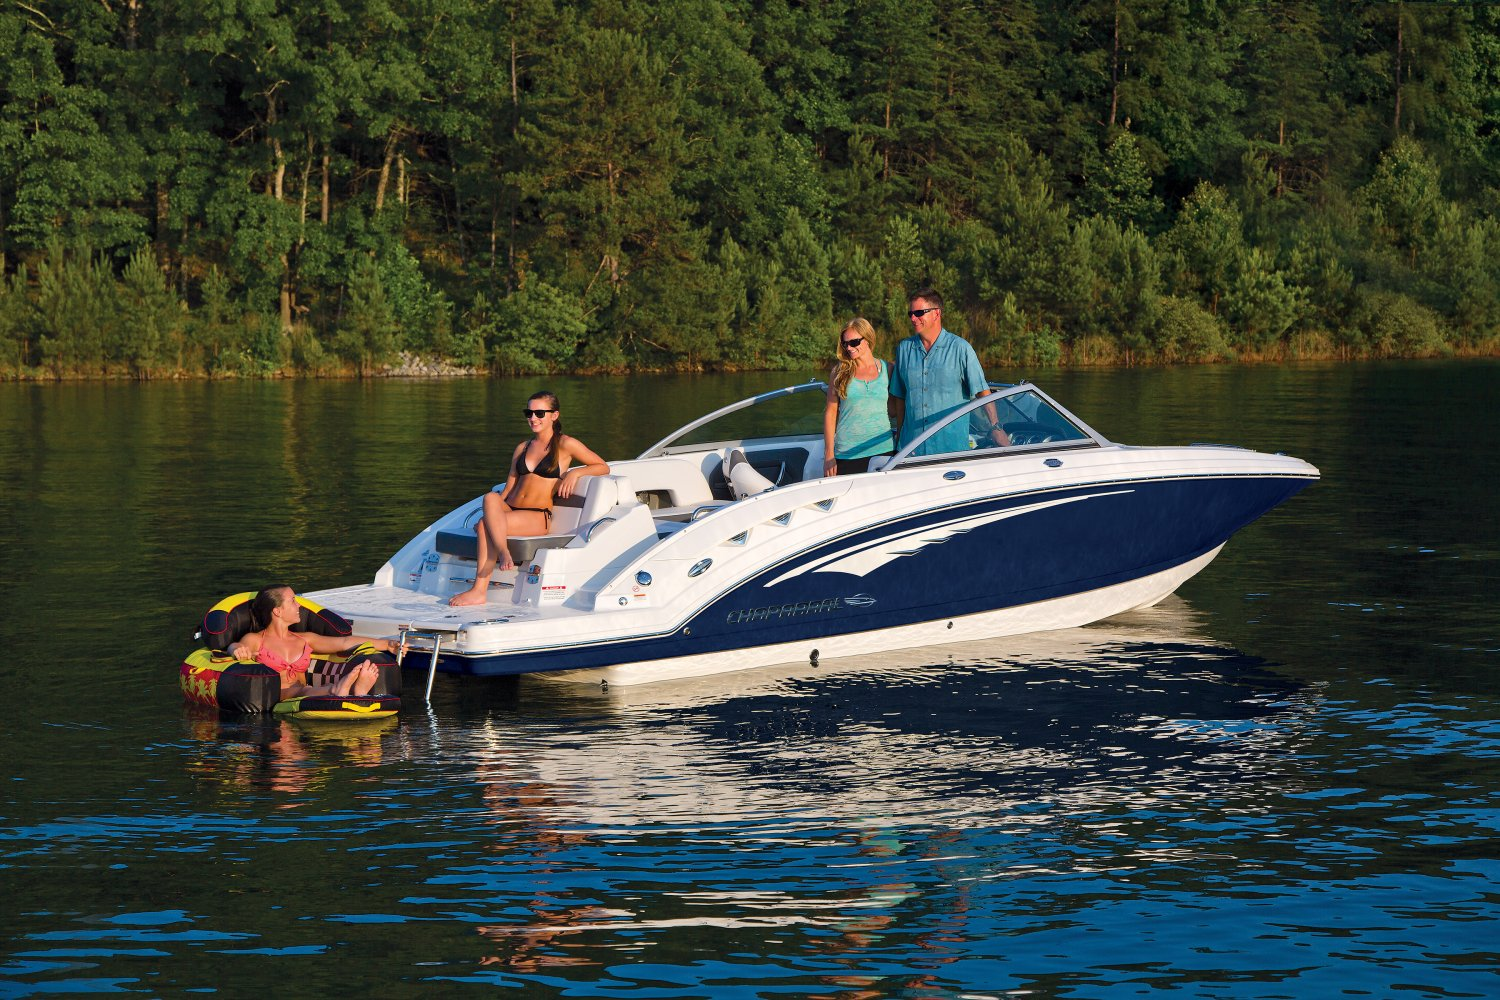 Family on a Chaparral wakeboard boat relaxing with a girl on a floatie